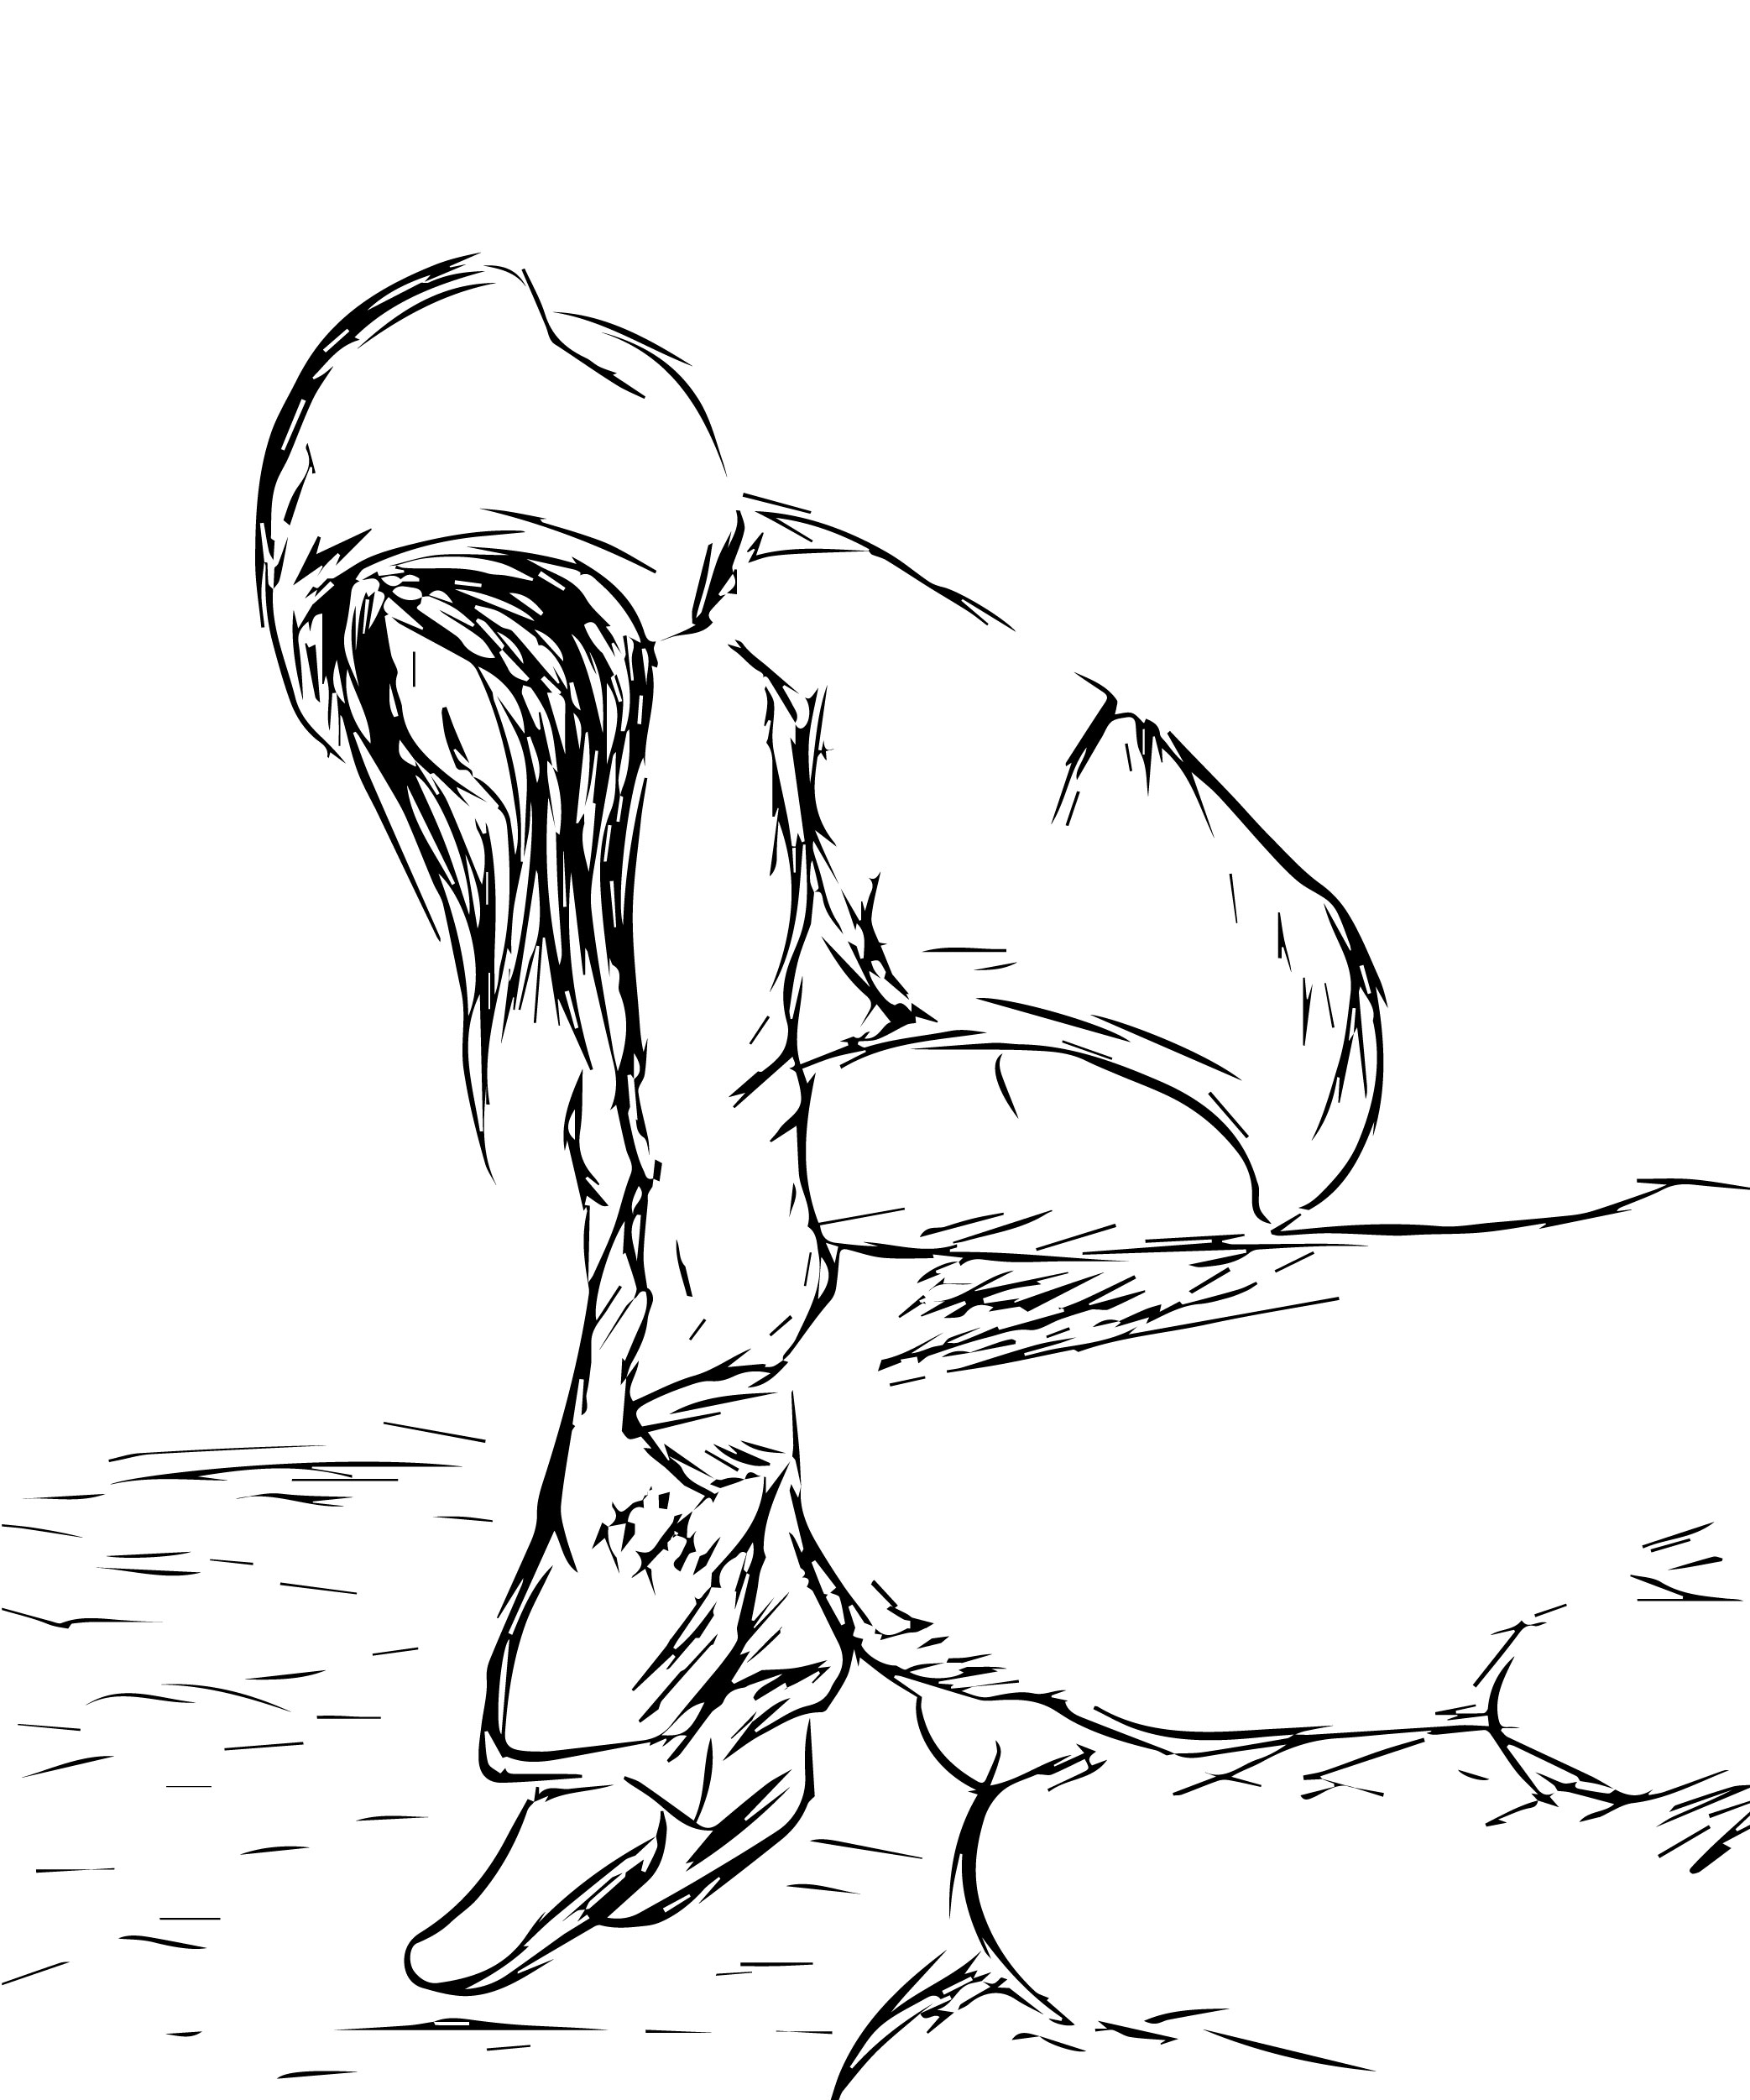 2085x2502 Line Drawing Of Crying Girl Depressed Sad Anime Girl Crying